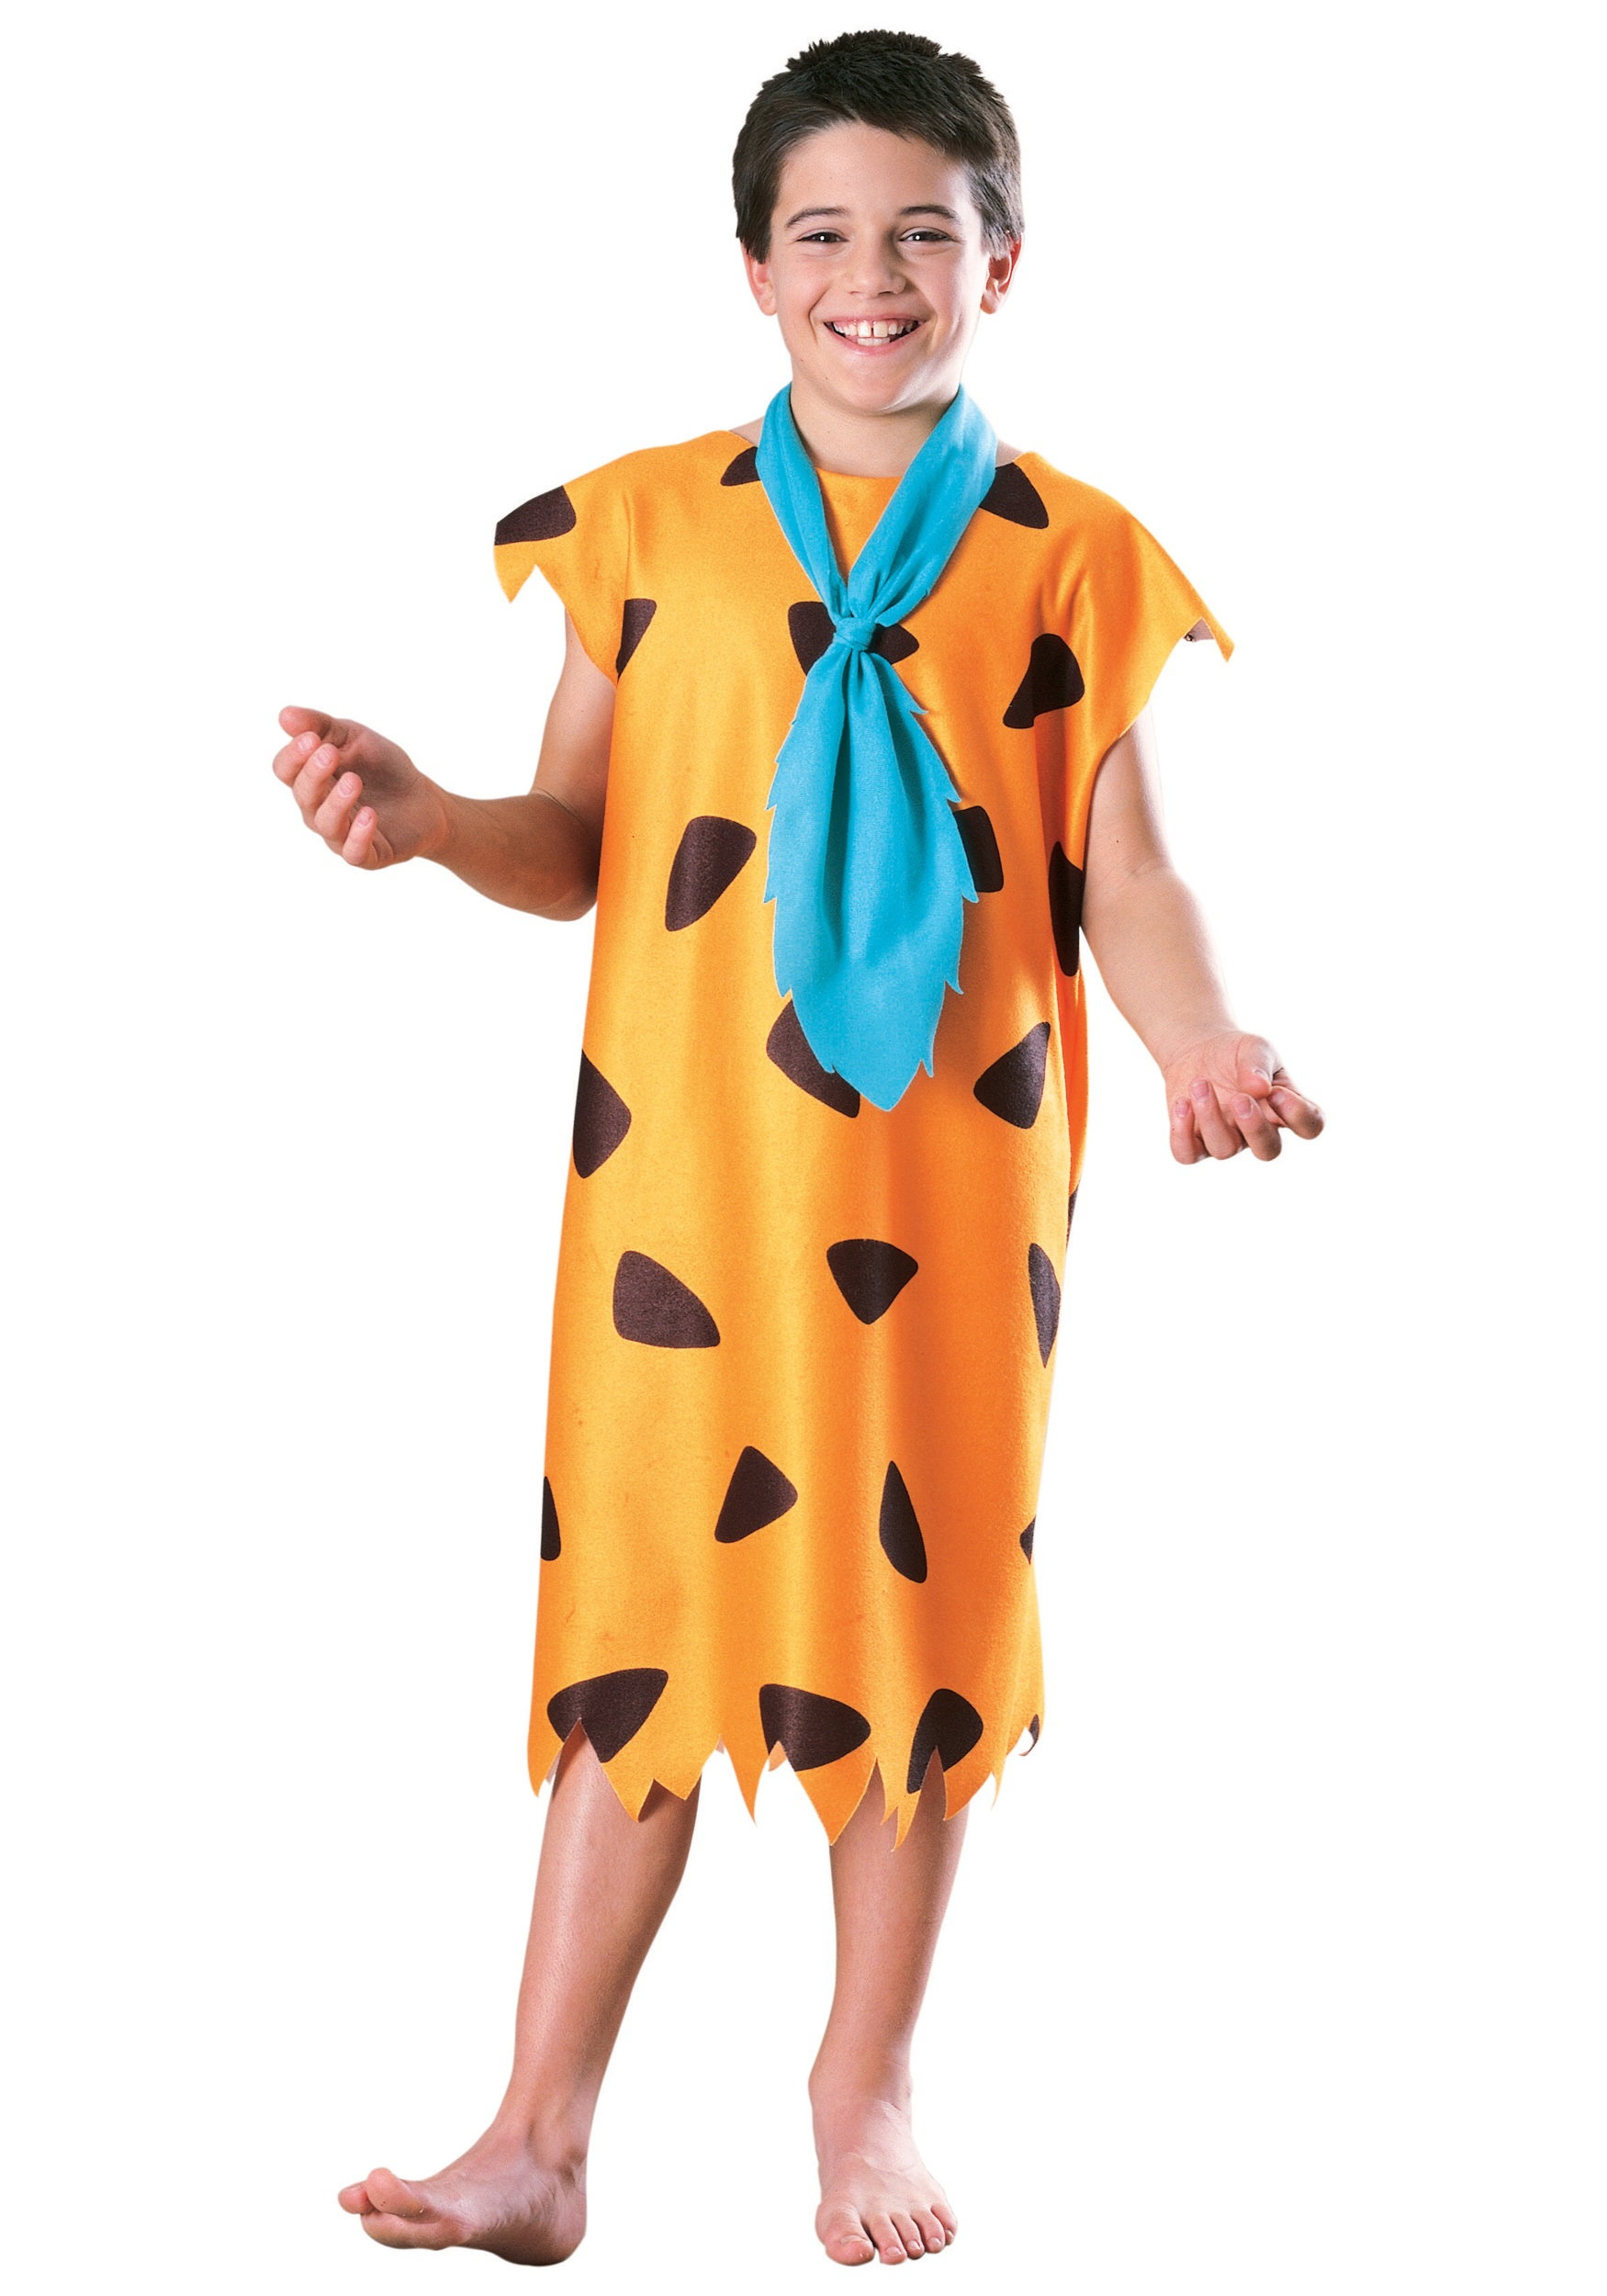 Child Fred Flintstone Costume  sc 1 st  Halloween Costume Ideas & Child Fred Flintstone Costume - Kids Flintstones Costumes